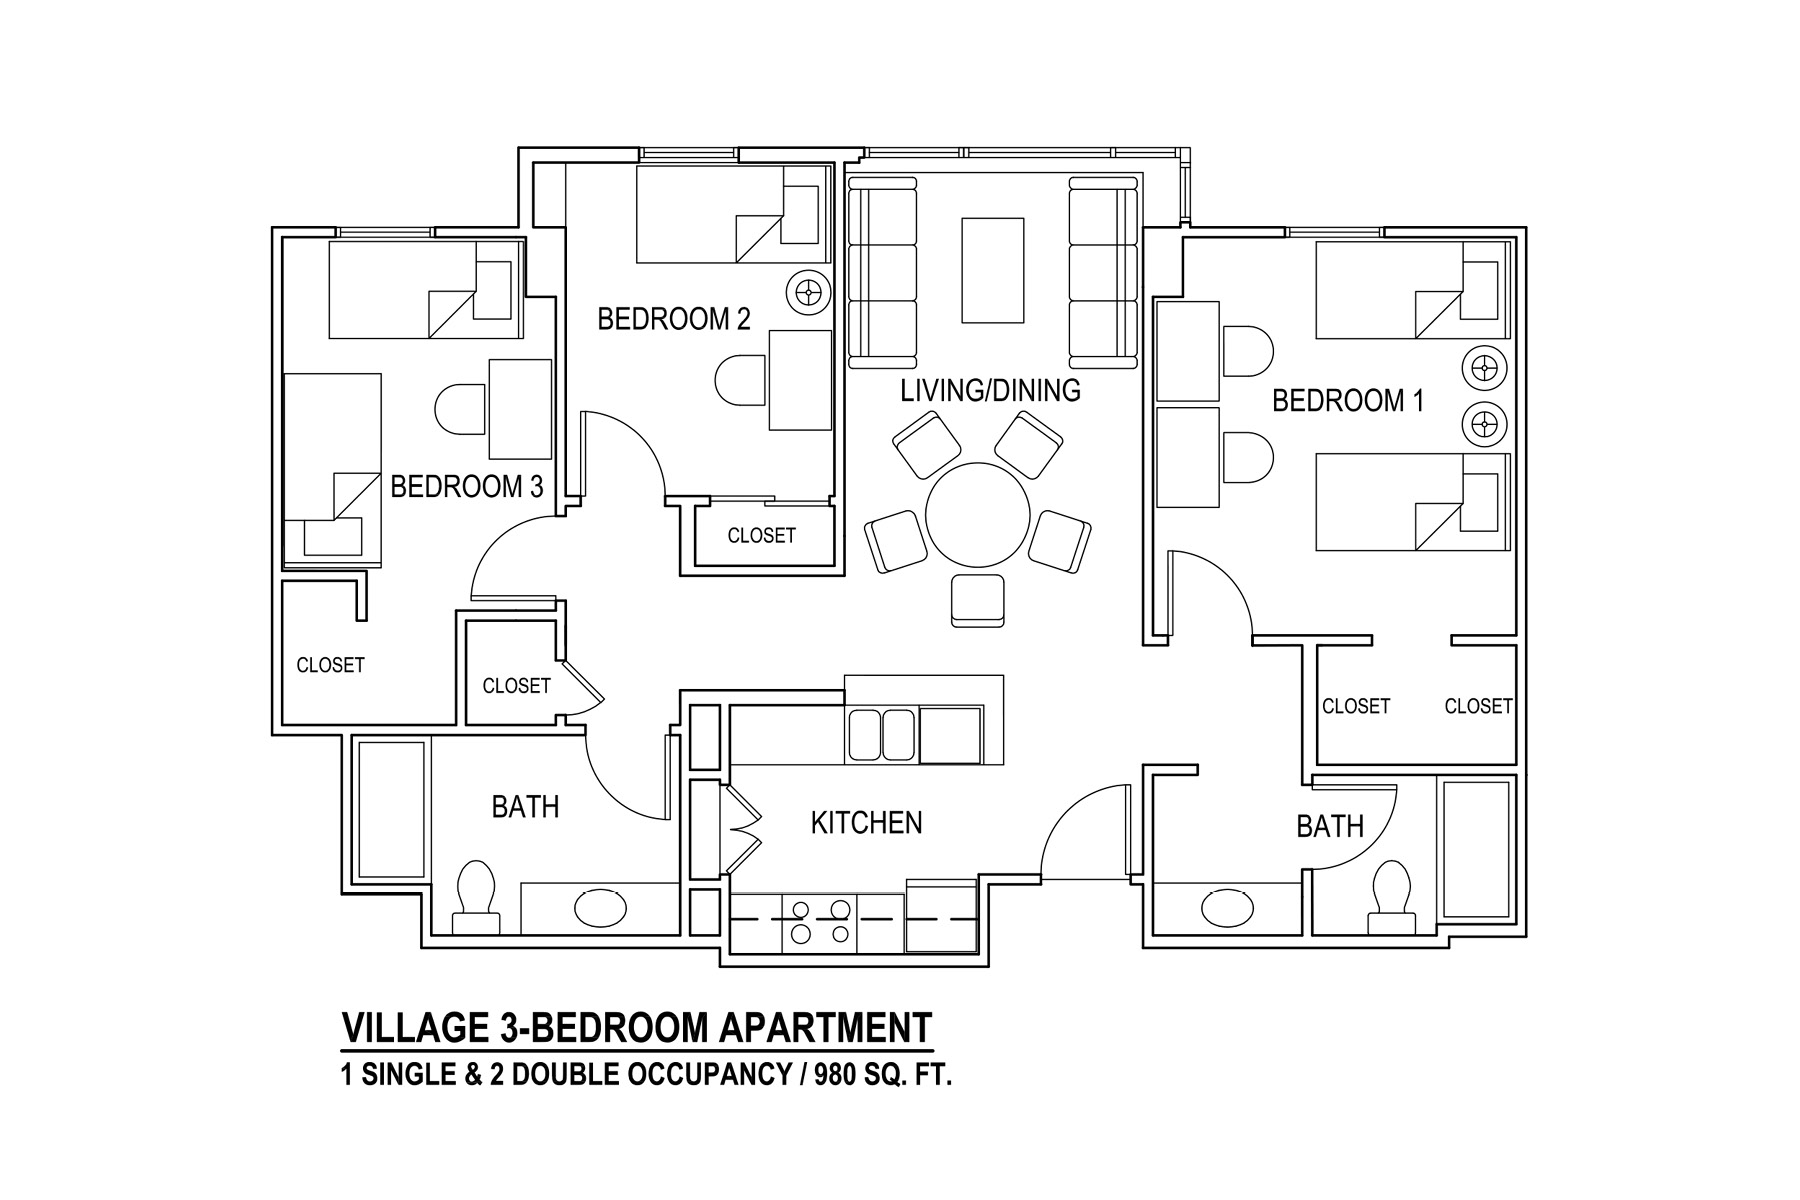 Village 3-Bedroom Apartment 1 Single & 2 Double Occupancy / 980 sq. ft.